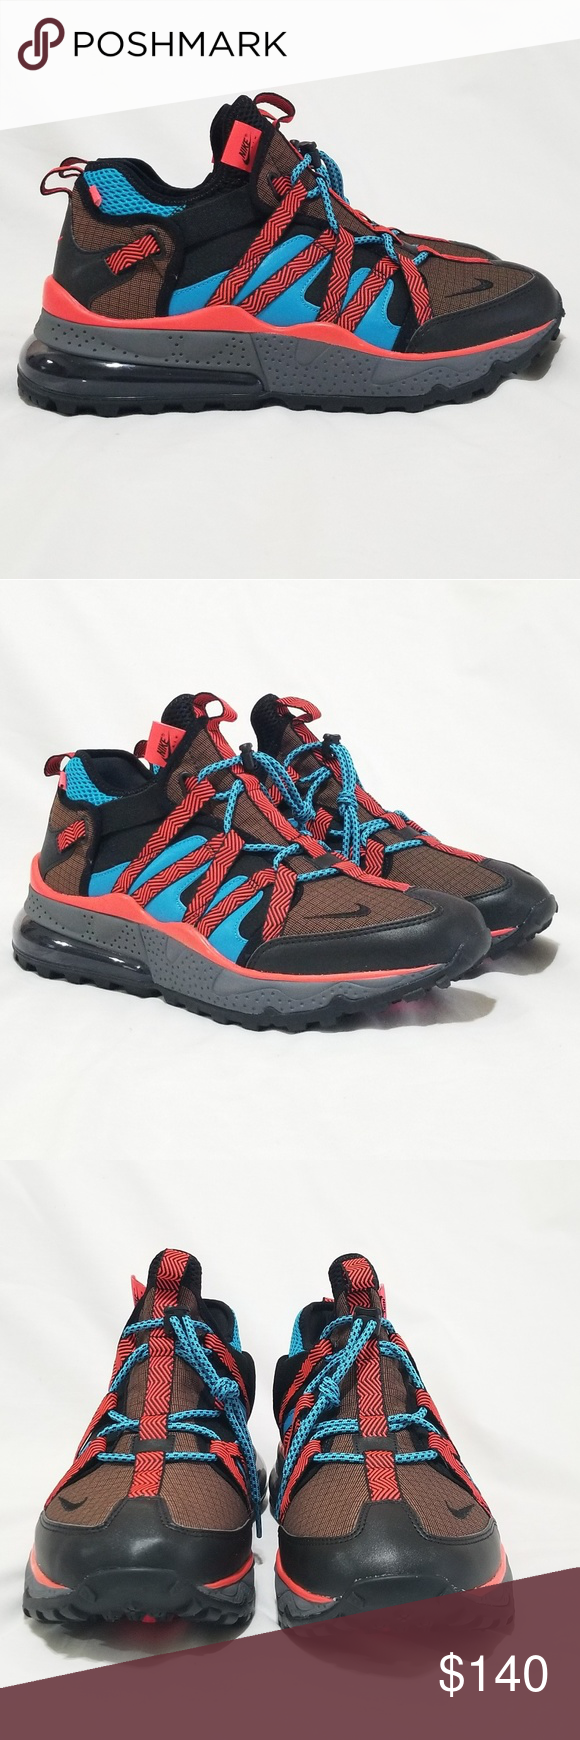 Nike Air Max 270 Bowfin Men's Shoe | Sneakers men fashion